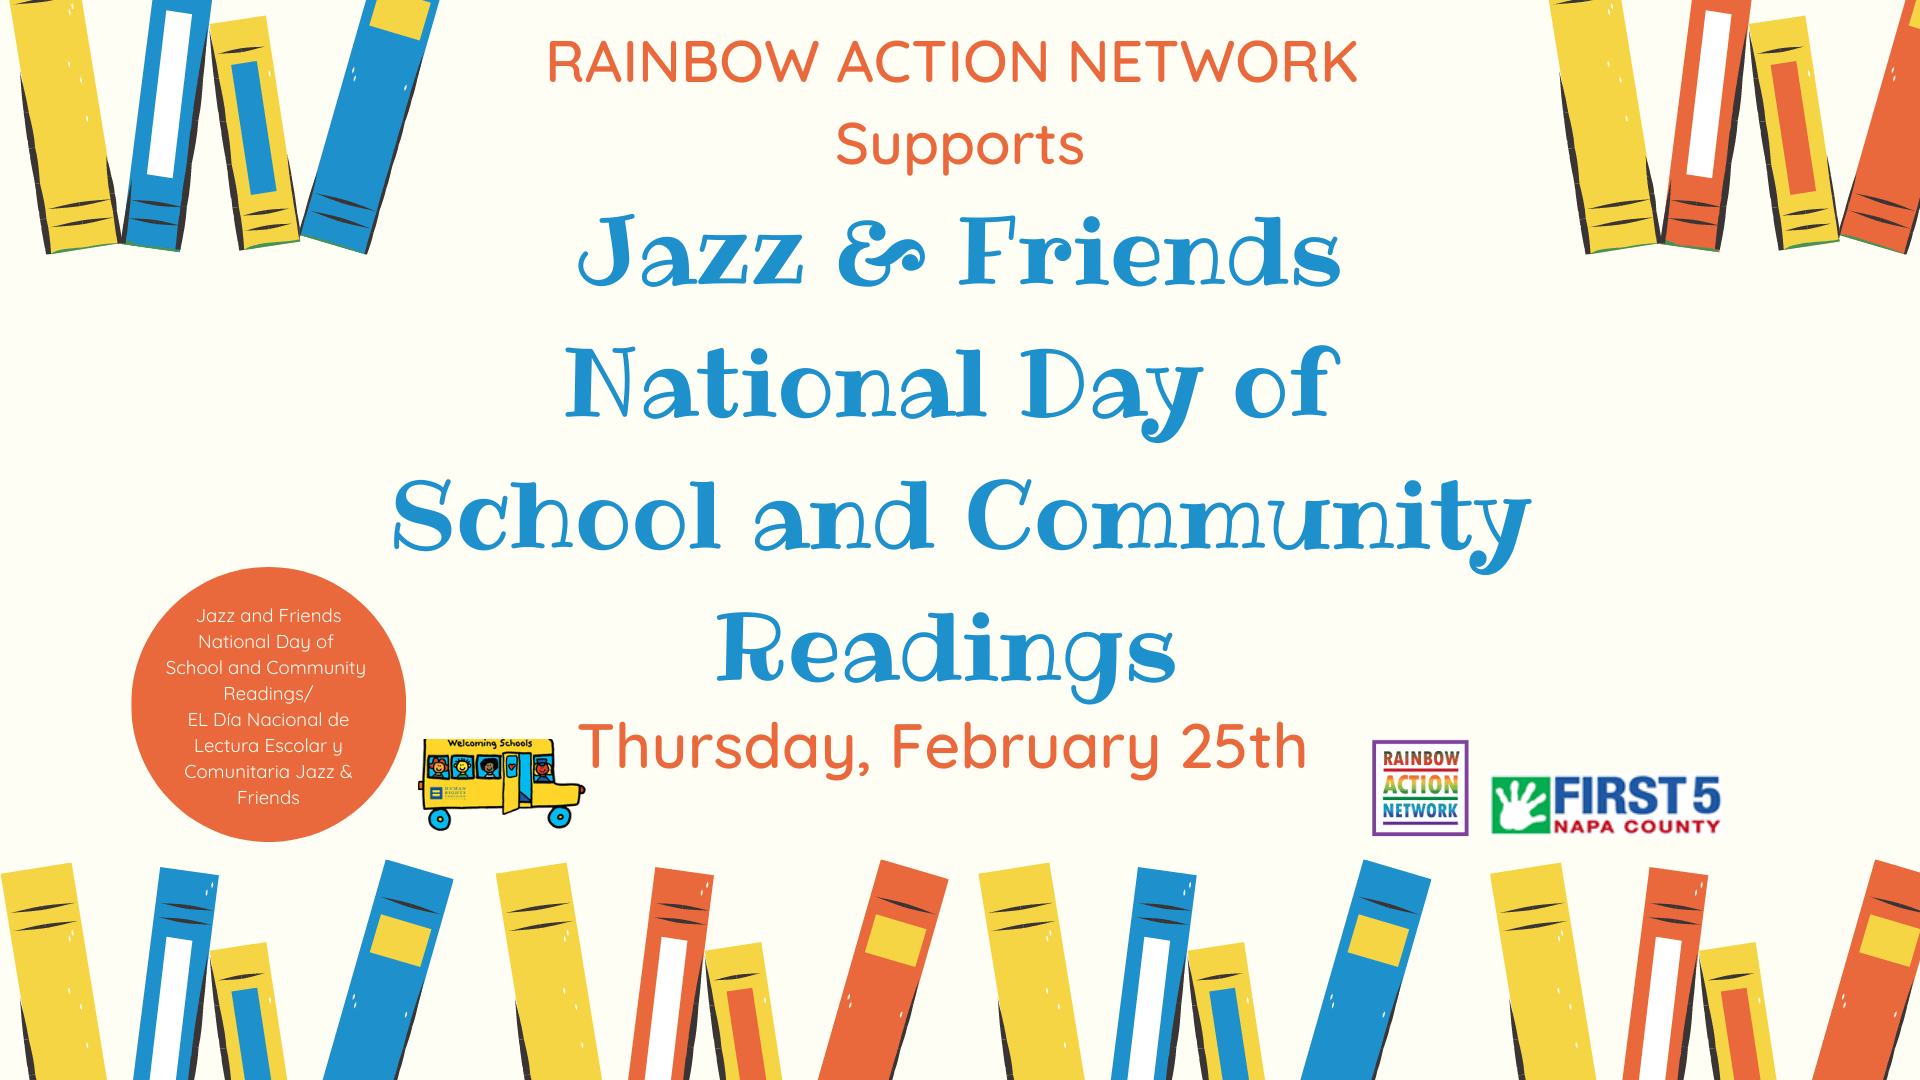 Host a Jazz & Friends School Reading